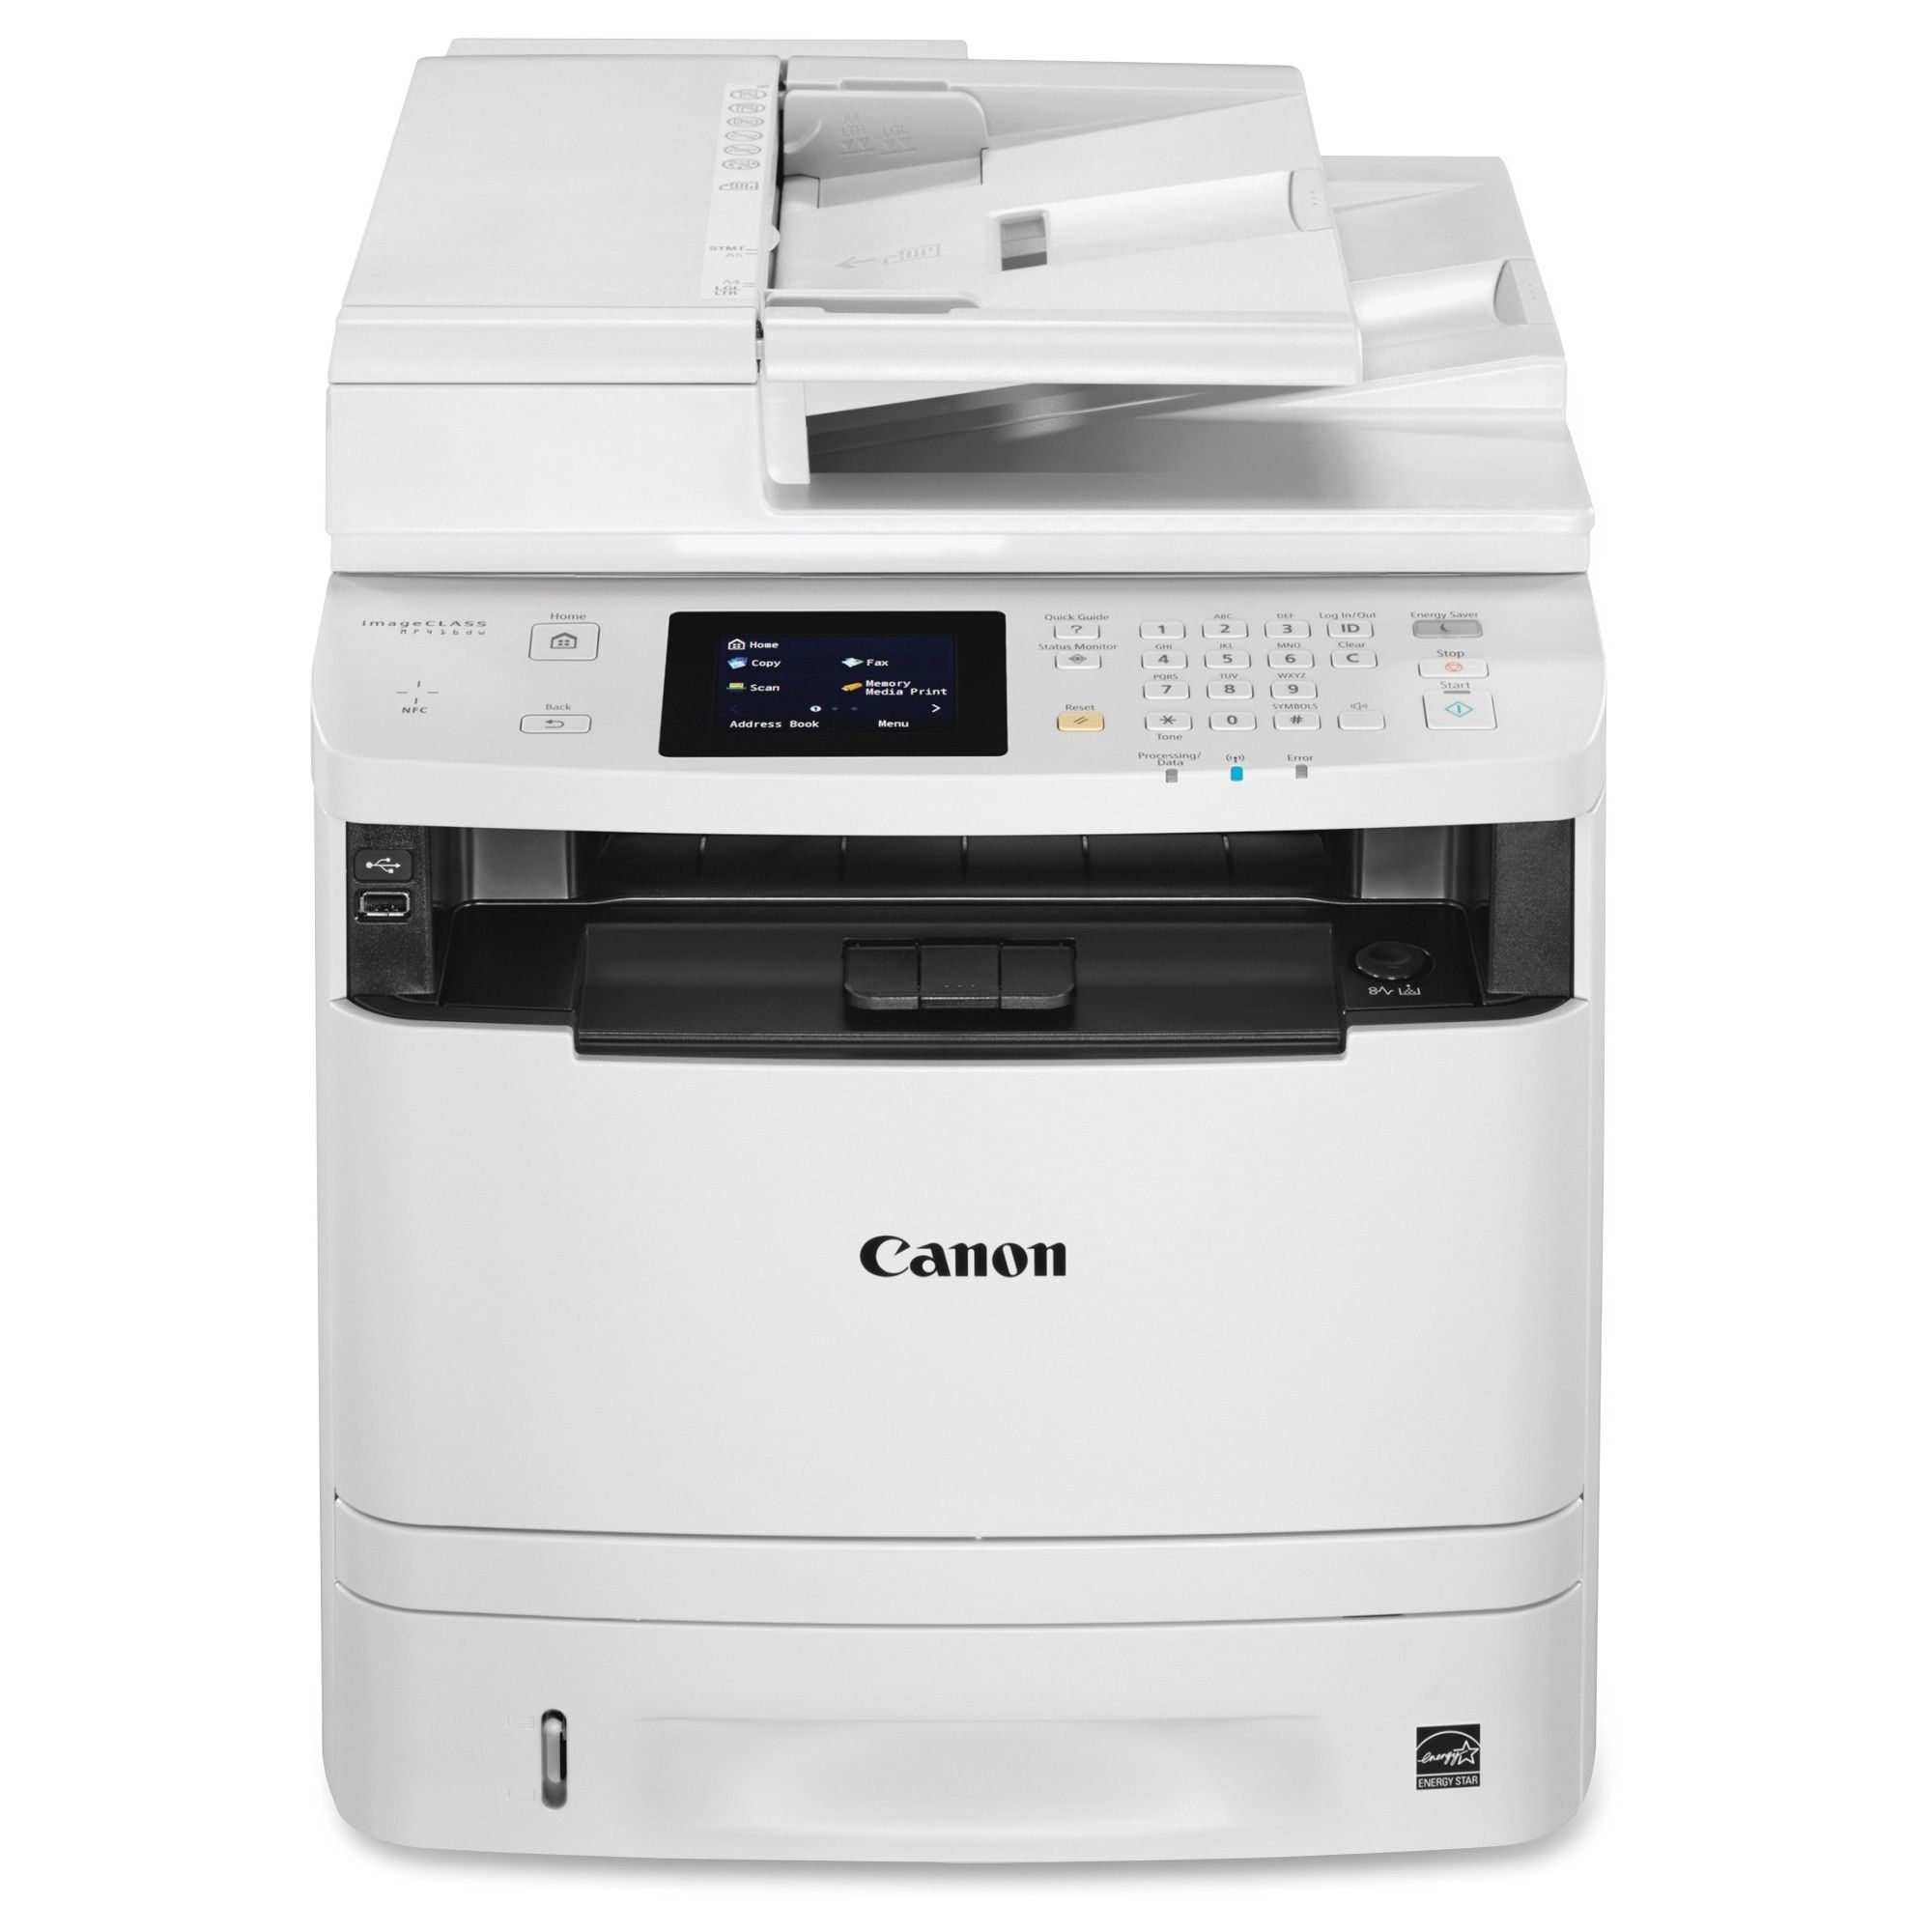 CANON MF4600 PRINTER DRIVER WINDOWS 7 (2019)